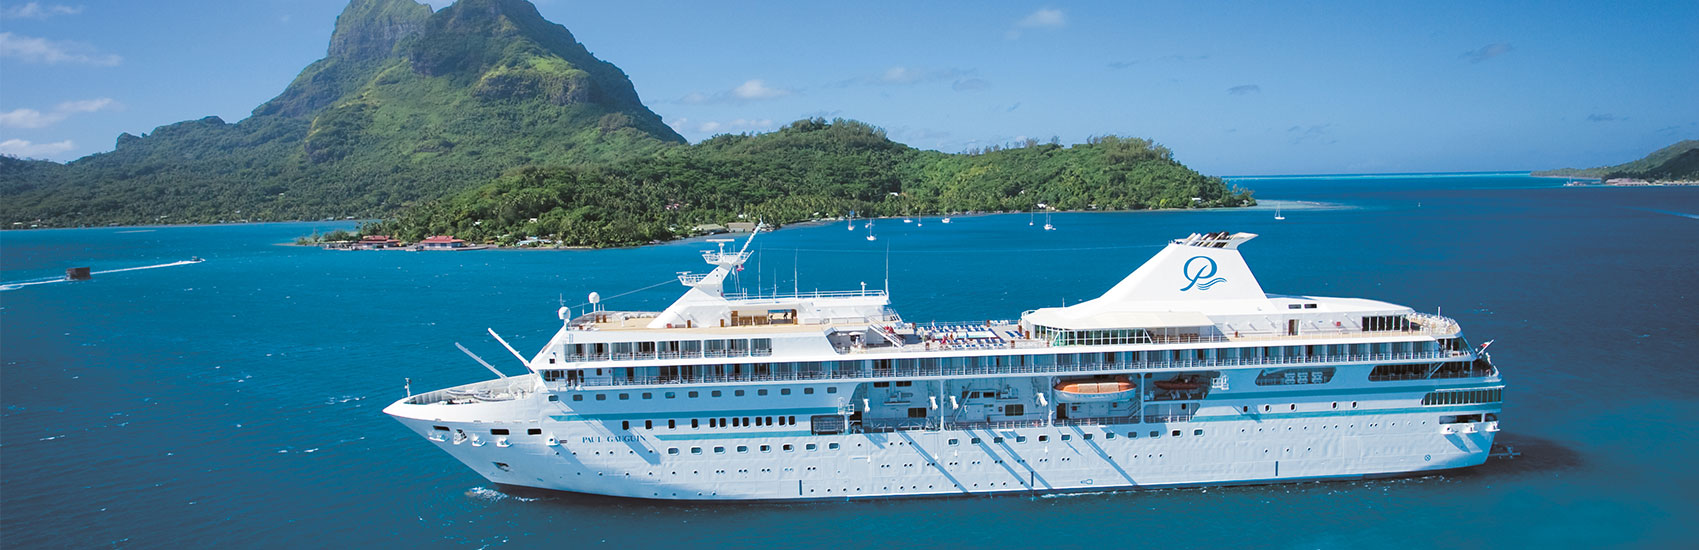 Cook Islands & Society Islands Cruise with Paul Gauguin 0